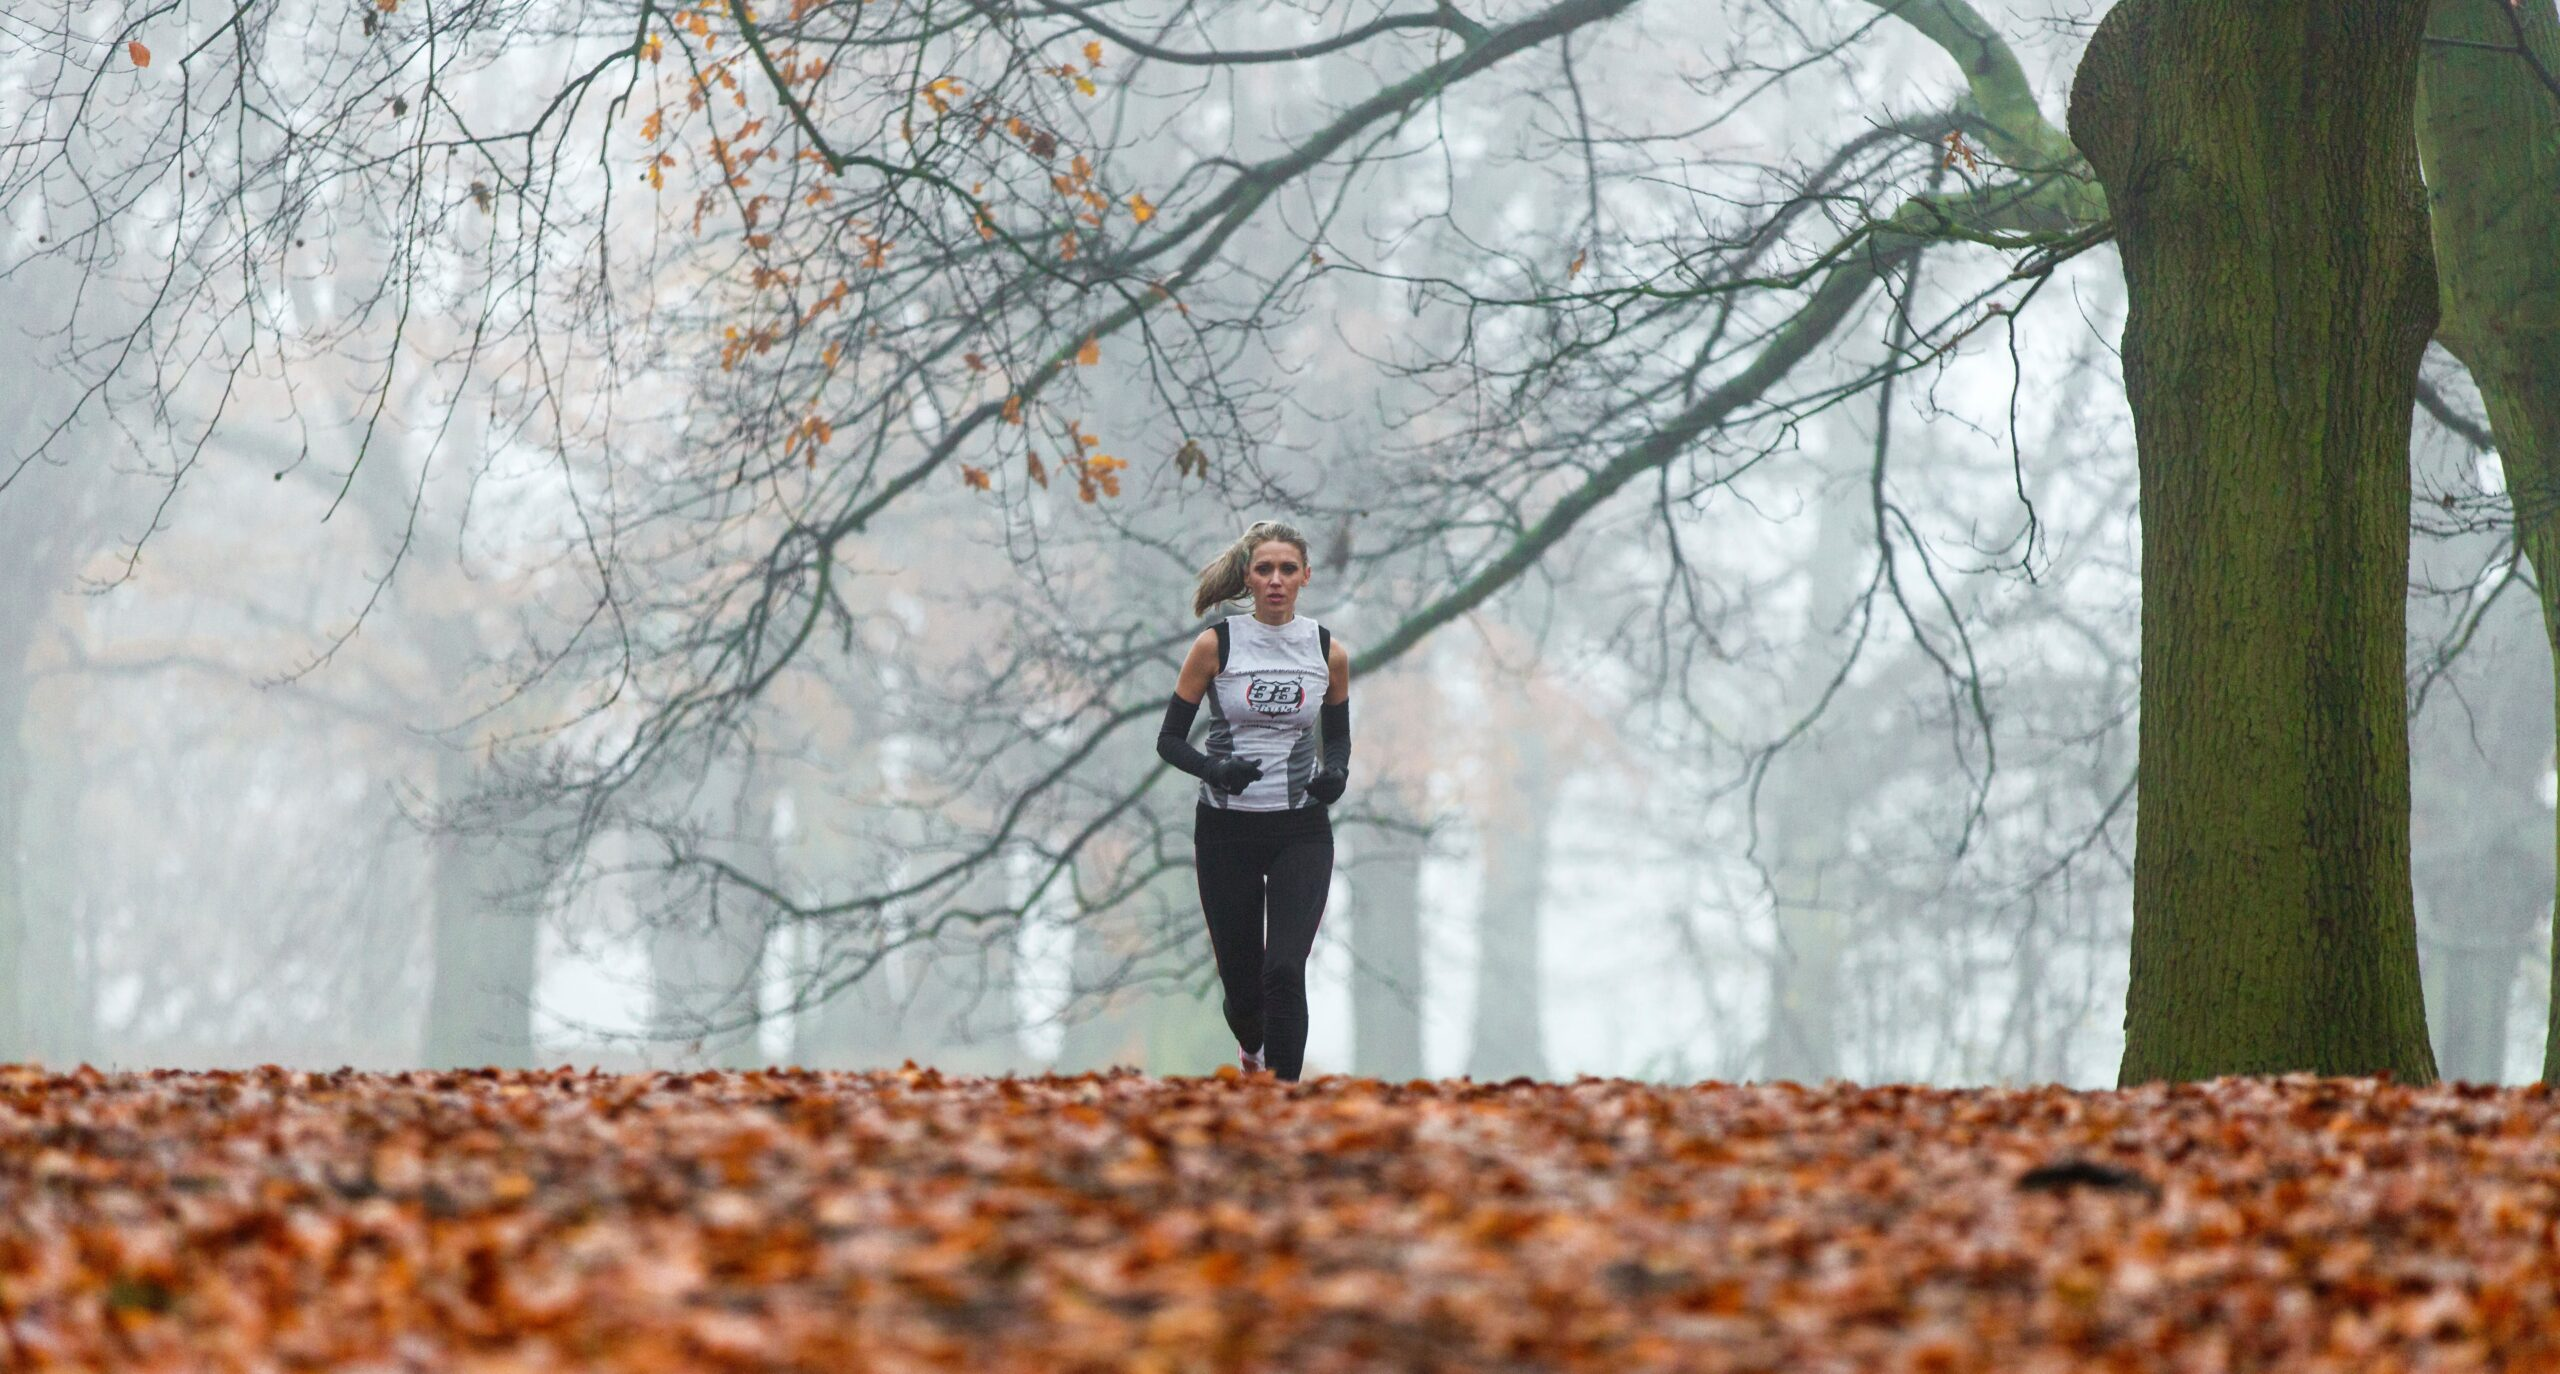 Exercise helps to manage your mood